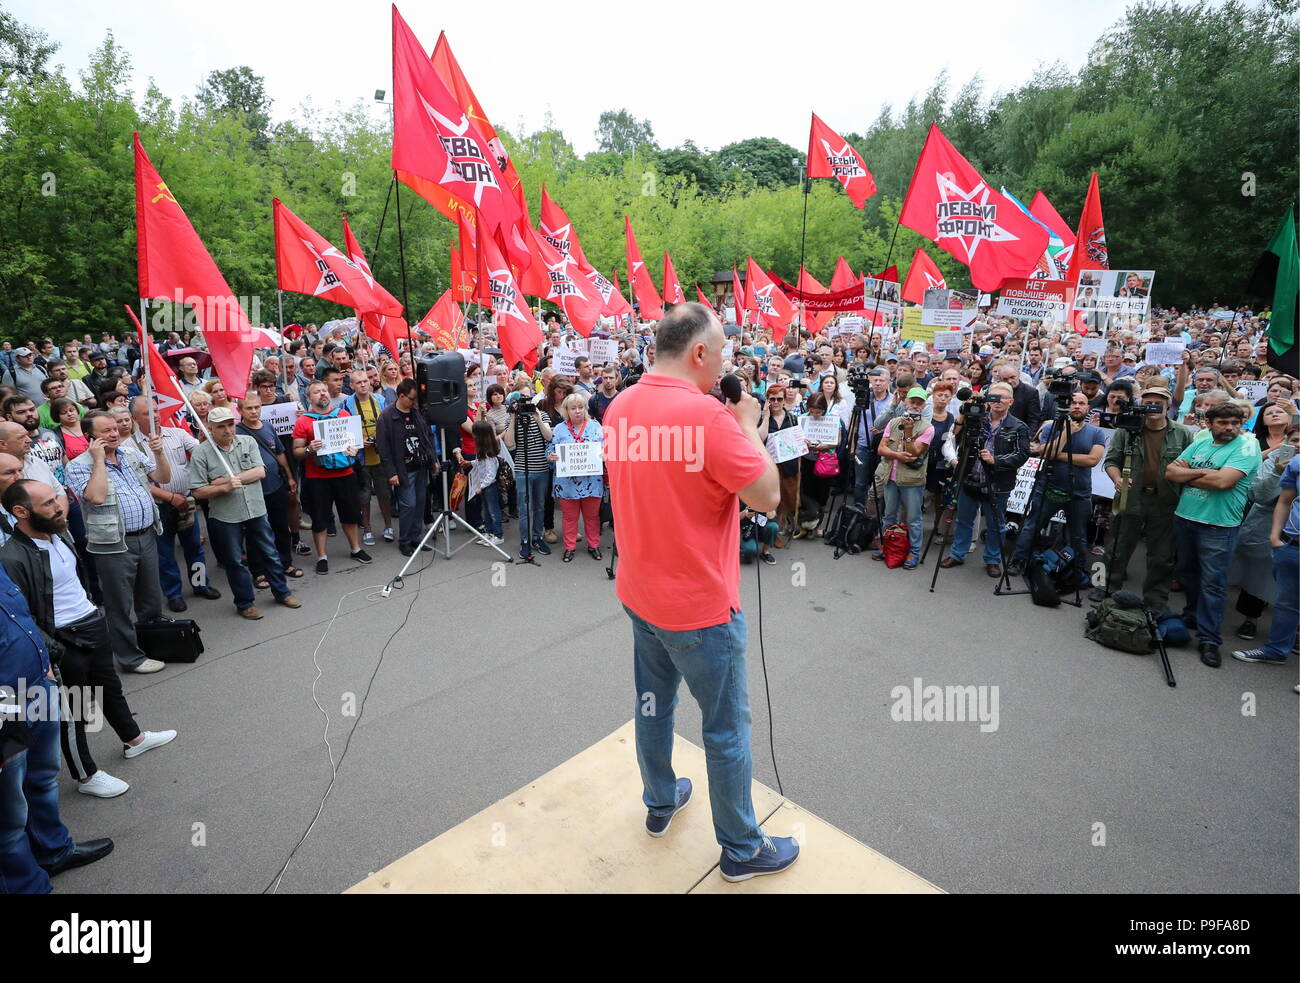 Moscow, Russia. 18th July, 2018. MOSCOW, RUSSIA - JULY 18, 2018: People take part in Moscow's Sokolniki Hyde Park rally against a Russian government proposal to raise the retirement age from 60 to 65 for men, and from 55 to 63 for women withing the next two decades. Sergei Savostyanov/TASS Credit: ITAR-TASS News Agency/Alamy Live News - Stock Image